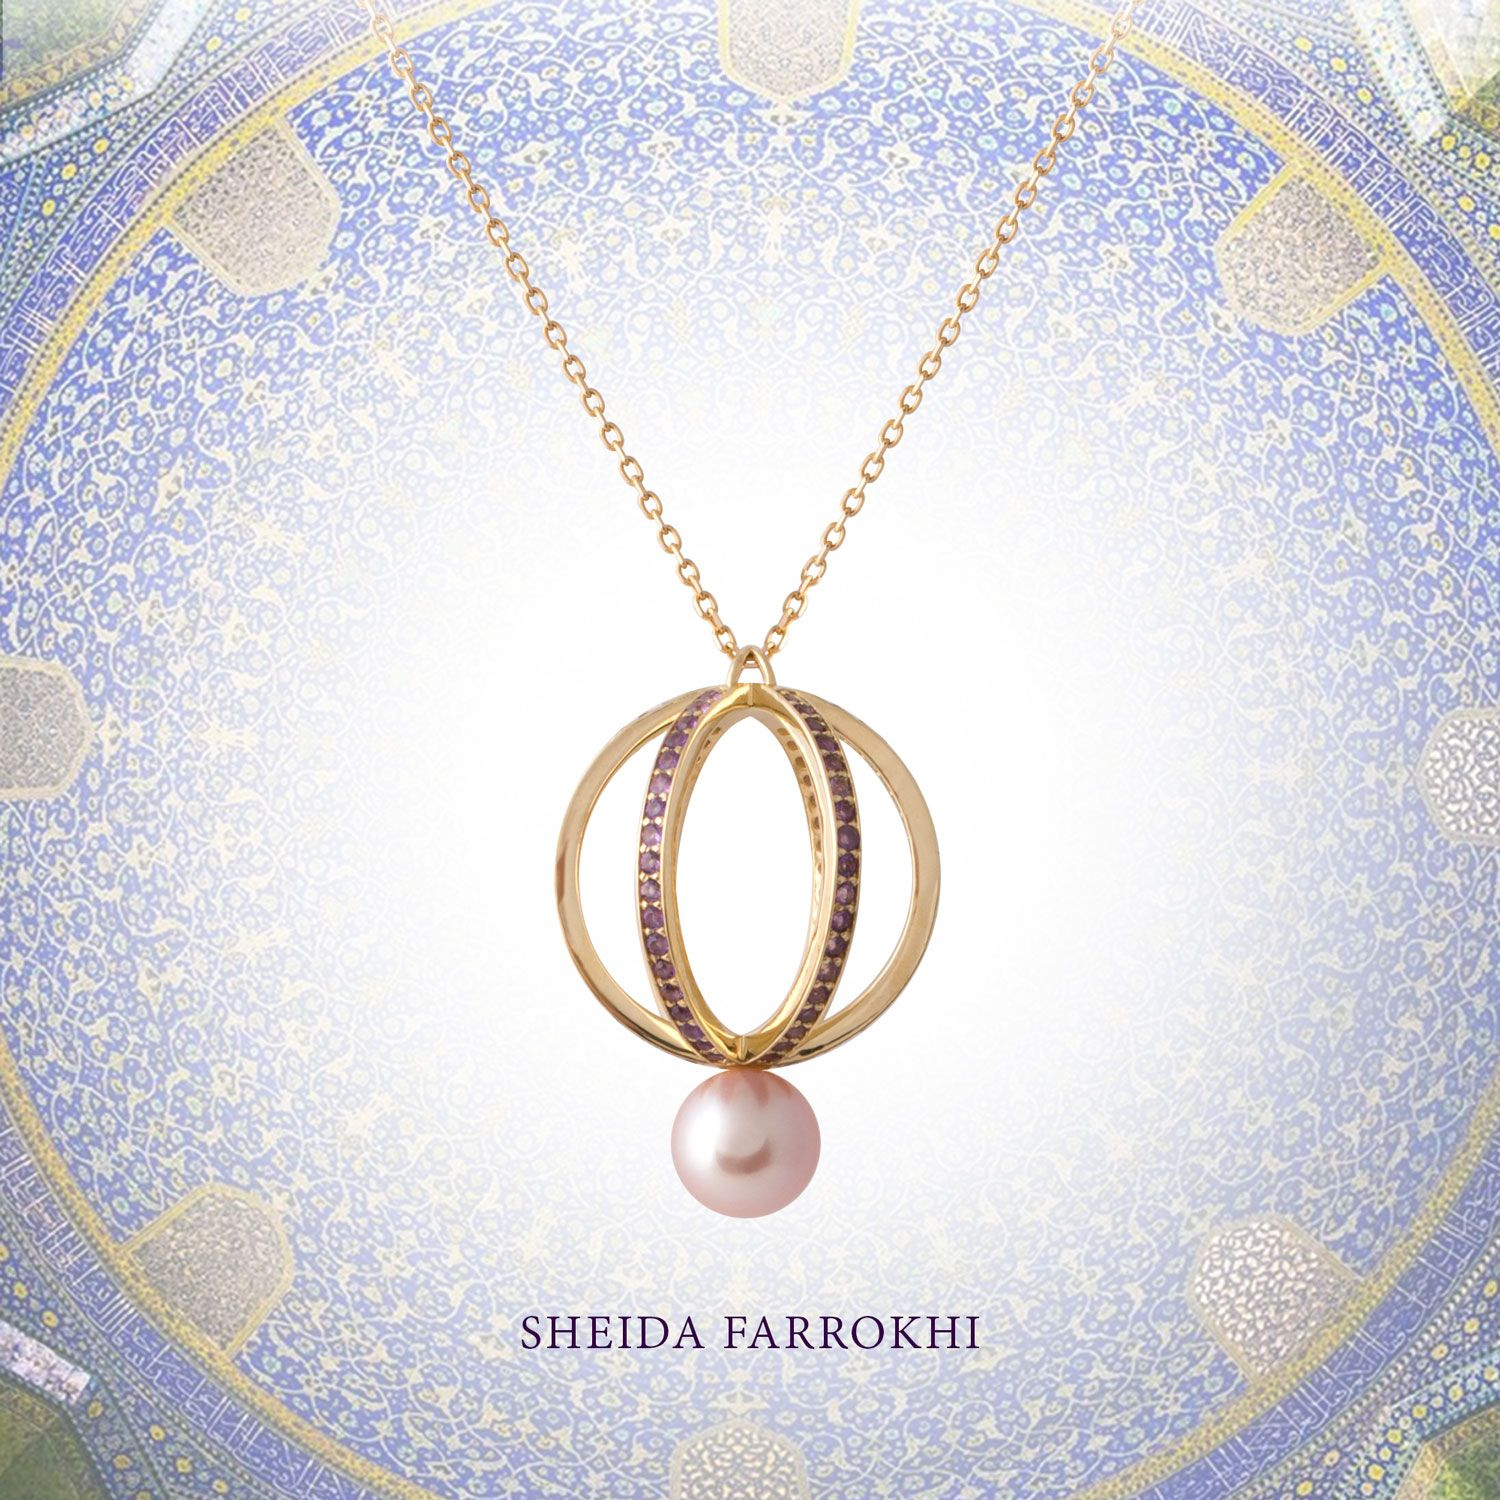 Around The City Diamontrigue Jewelry: Isfahan Collection Is Inspired By The Beautiful Isfahan